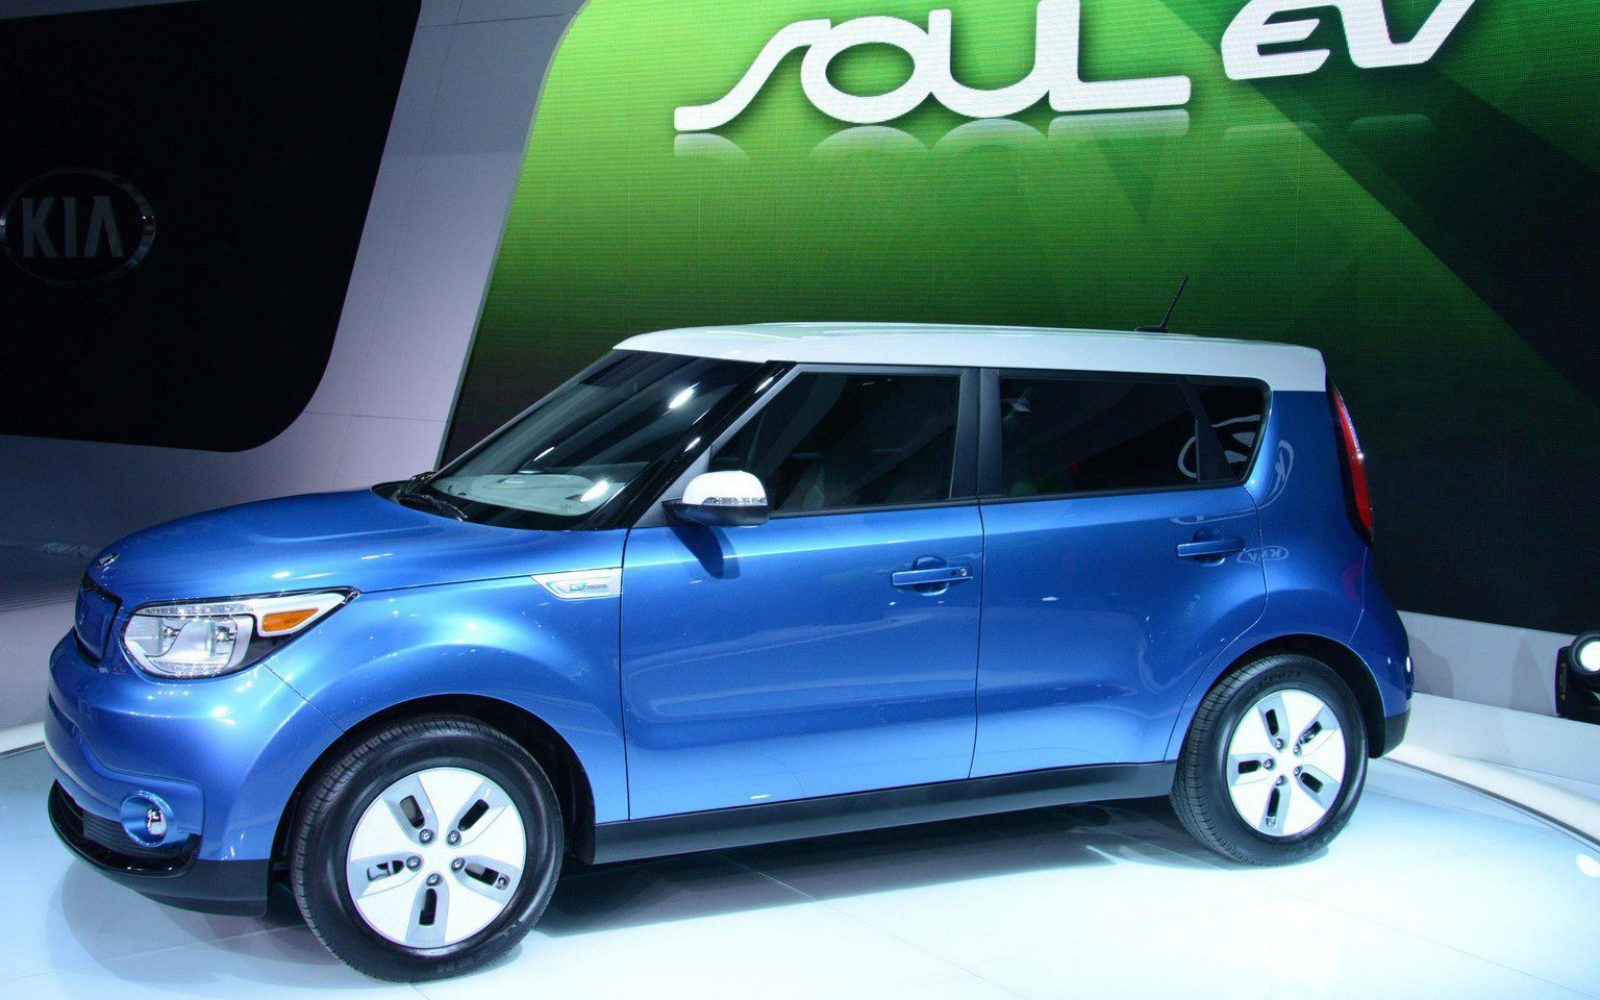 2018 Kia Soul Ev Gets A Battery Upgrade To Bring The Range Over 100